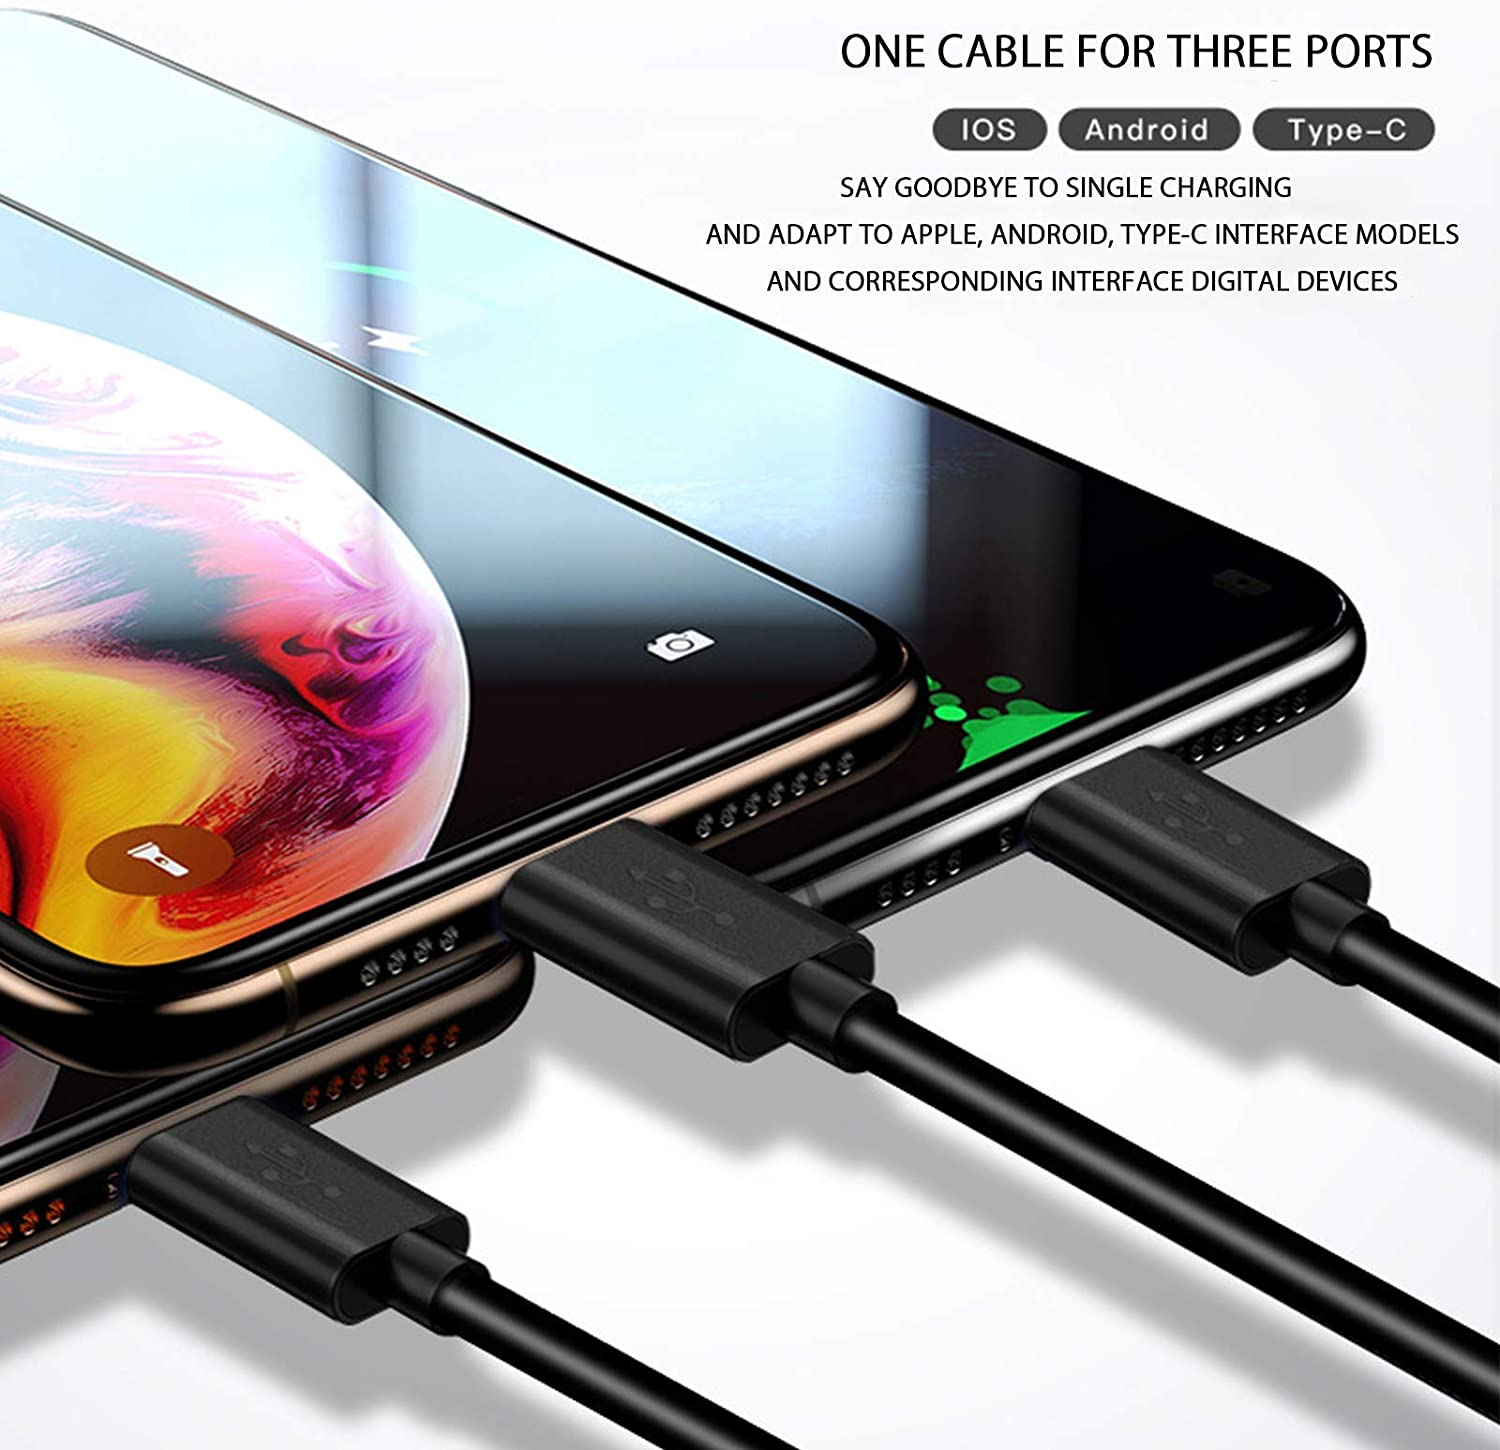 60W for iPhone 11//Xs//XS Max//XR//X//8//7//6s//6 Plus CAM2 USB Car Charger,3 Quick Charge 3.0 /& 3.1A Fast USB,4Ports 5.5ft iPad /& More